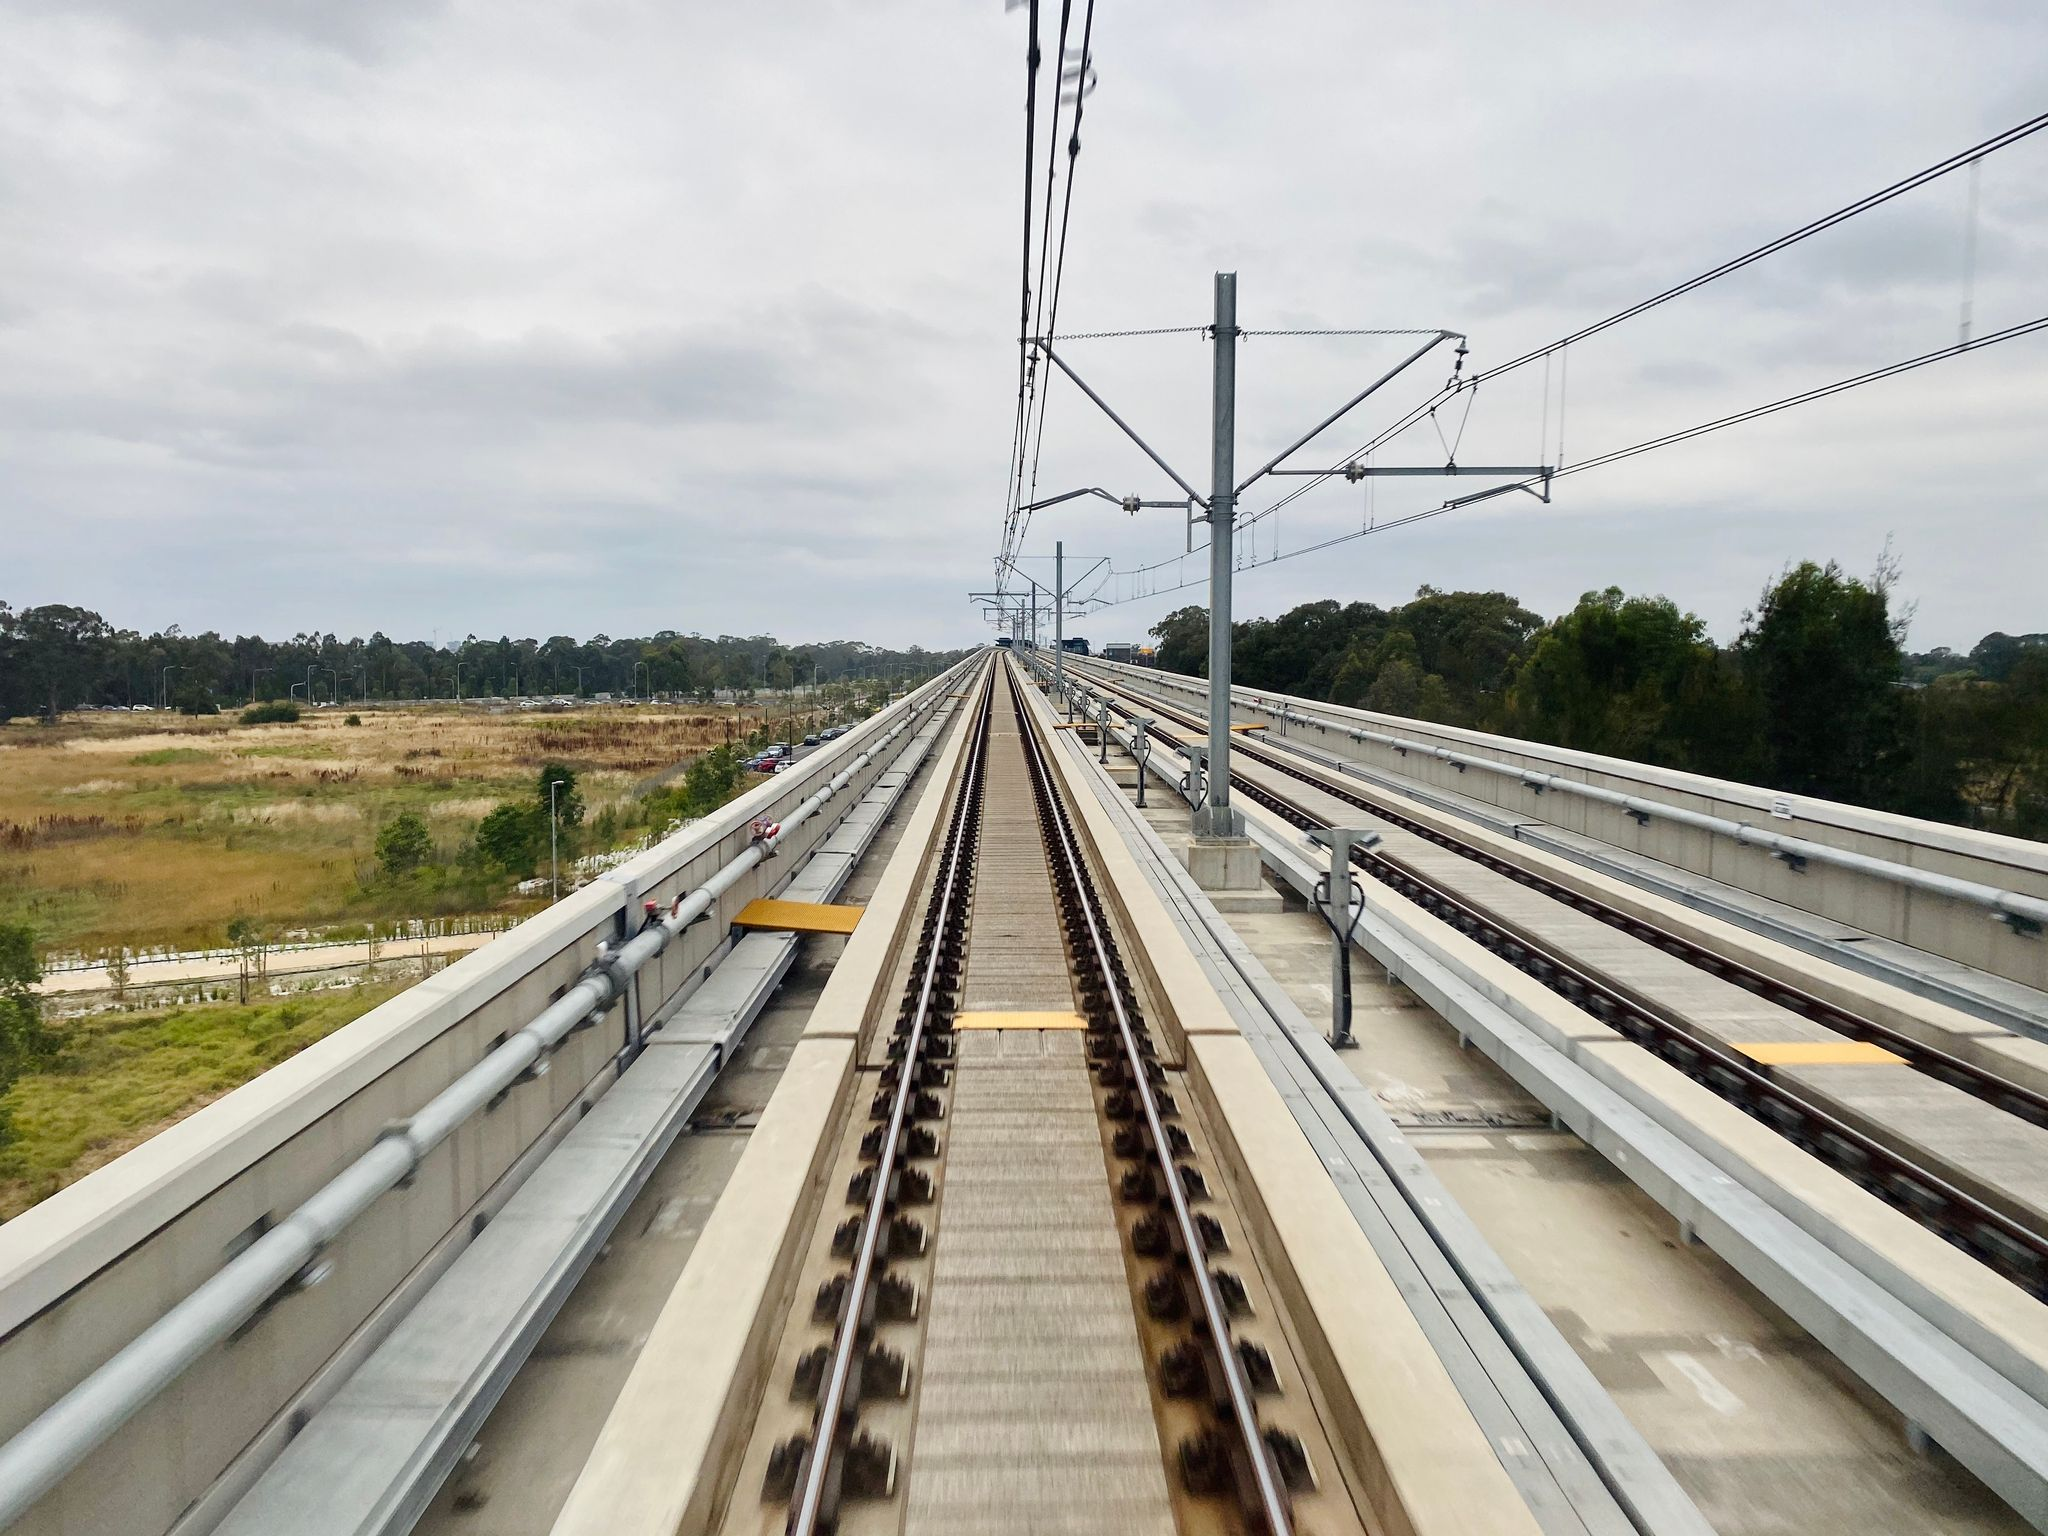 A photo from the front of a train looking out at the tracks going off into the distance. It's an above-ground part of the route and the sky above is grey and cloudy.